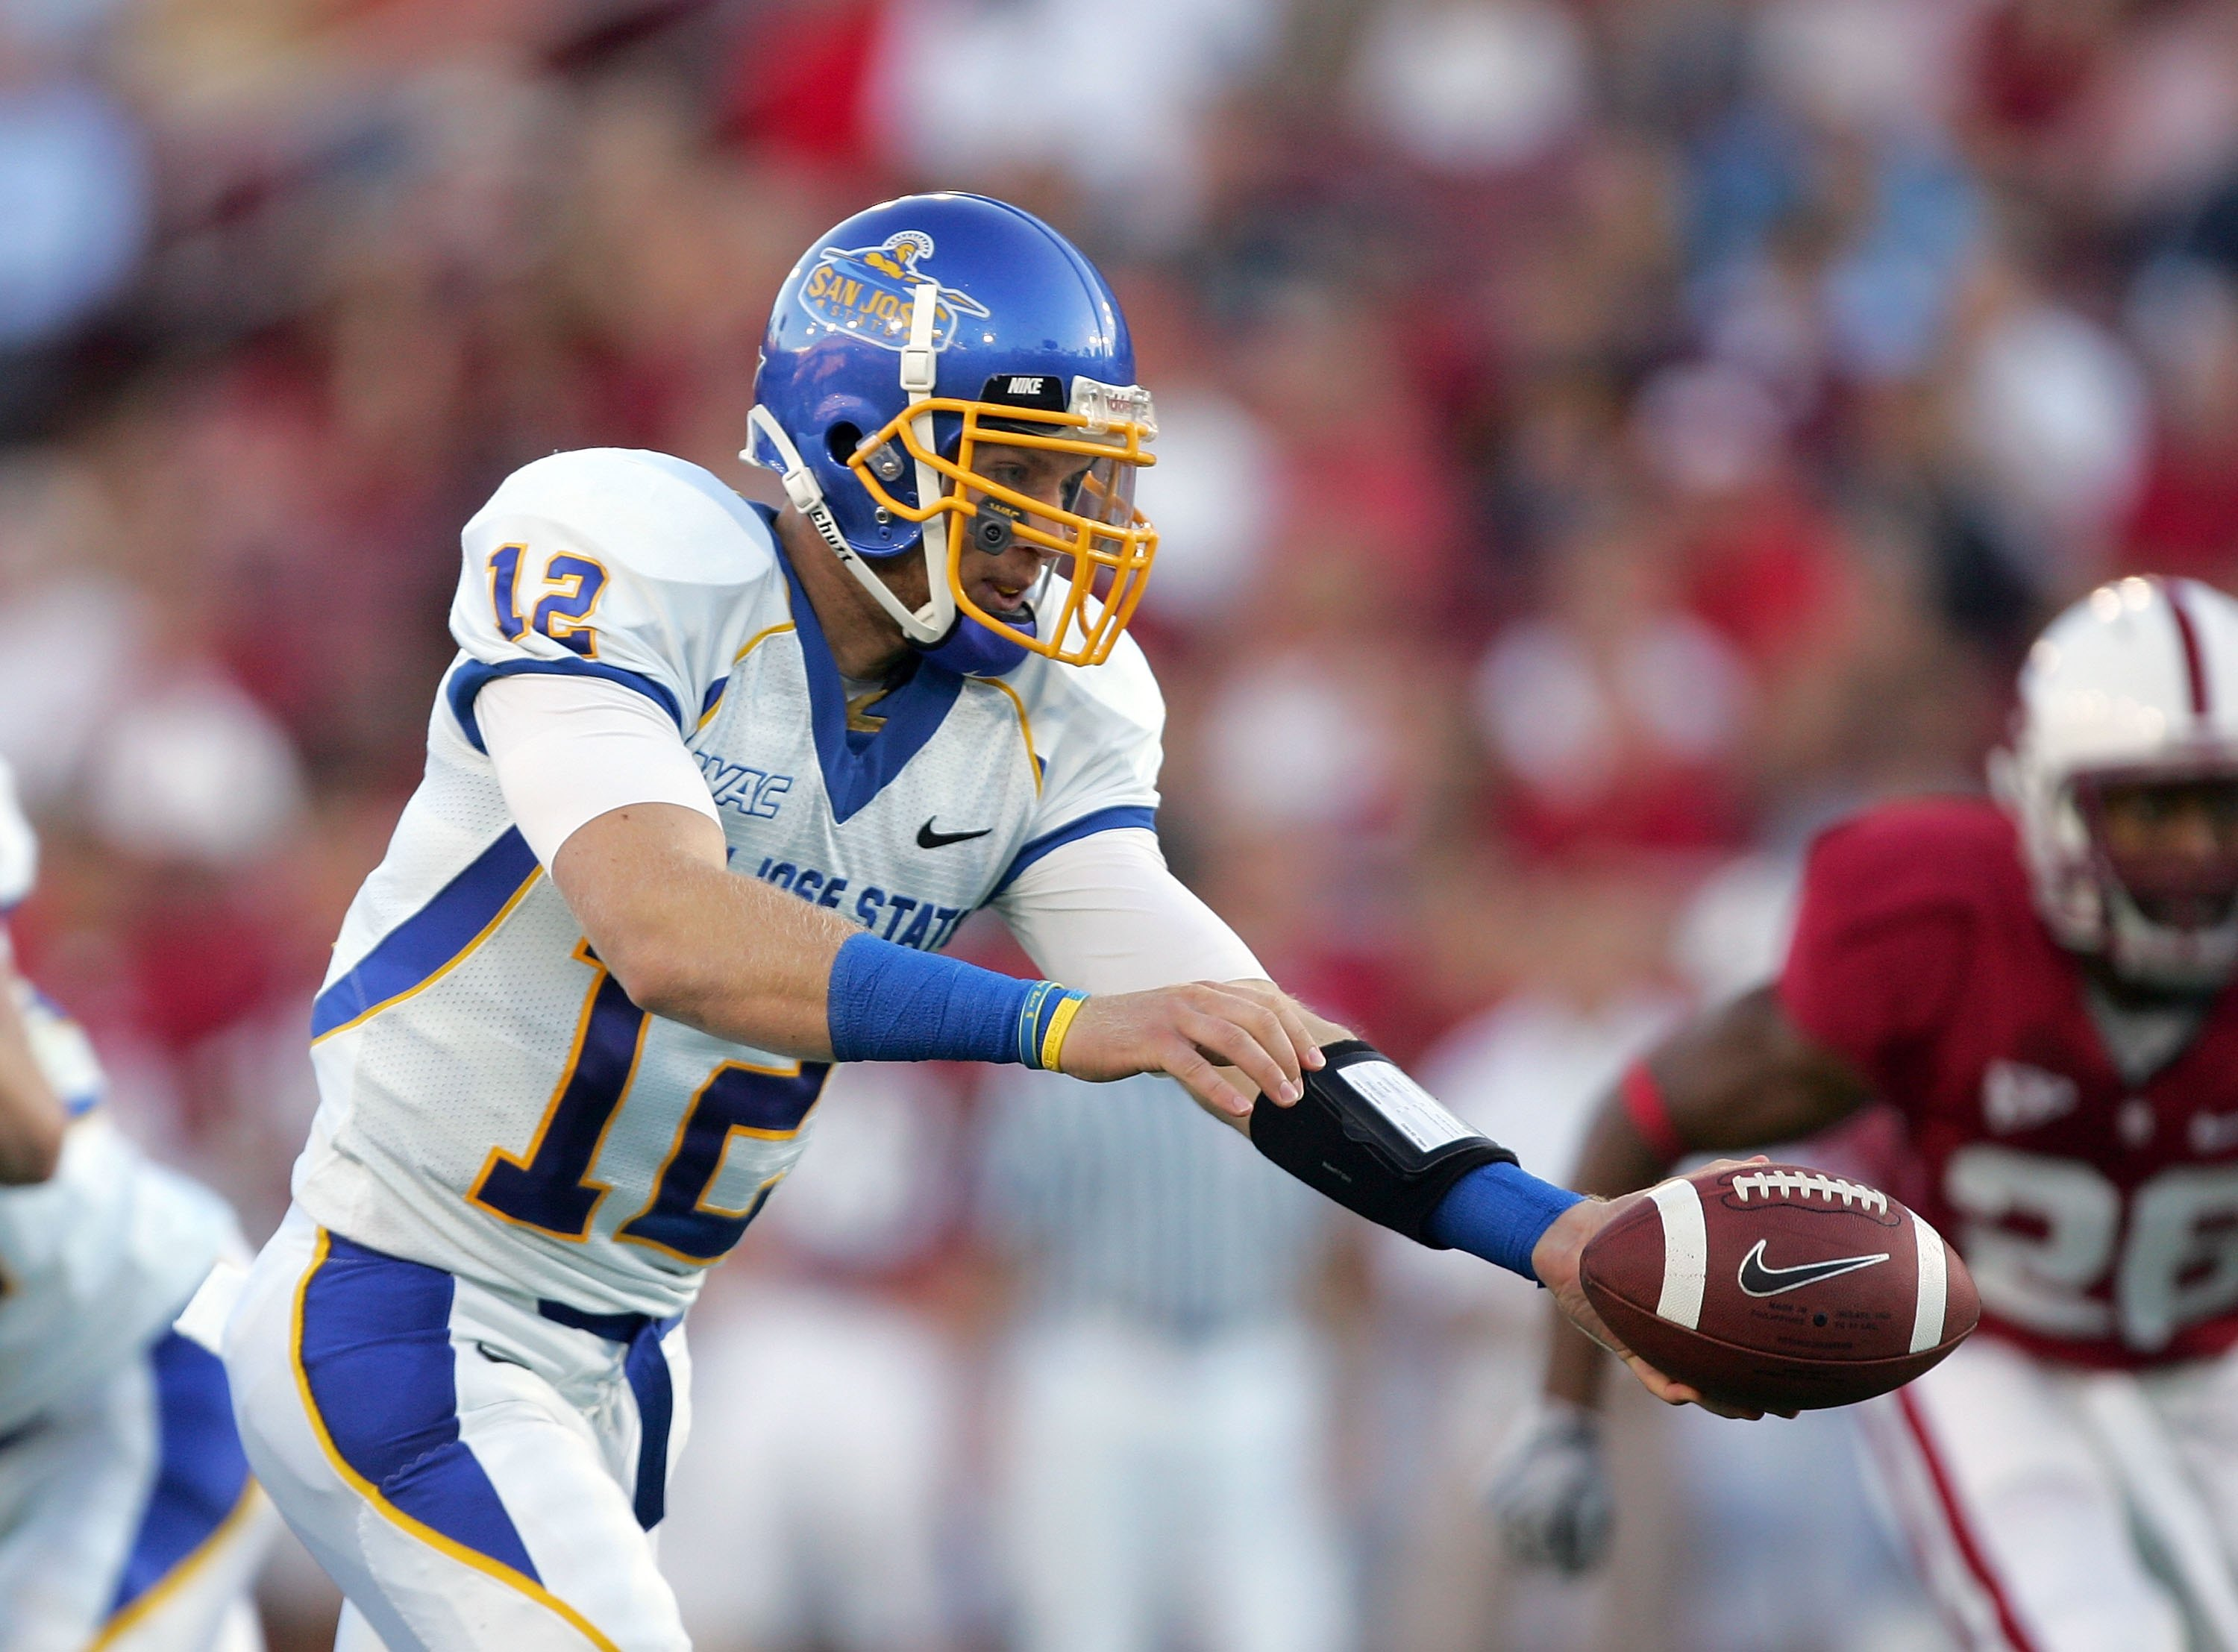 PALO ALTO, CA - SEPTEMBER 19:  Jordan La Secia #12 of the San Jose State Spartans in action during their game against the Stanford Cardinal at Stanford Stadium on September 19, 2009 in Palo Alto, California.  (Photo by Ezra Shaw/Getty Images)